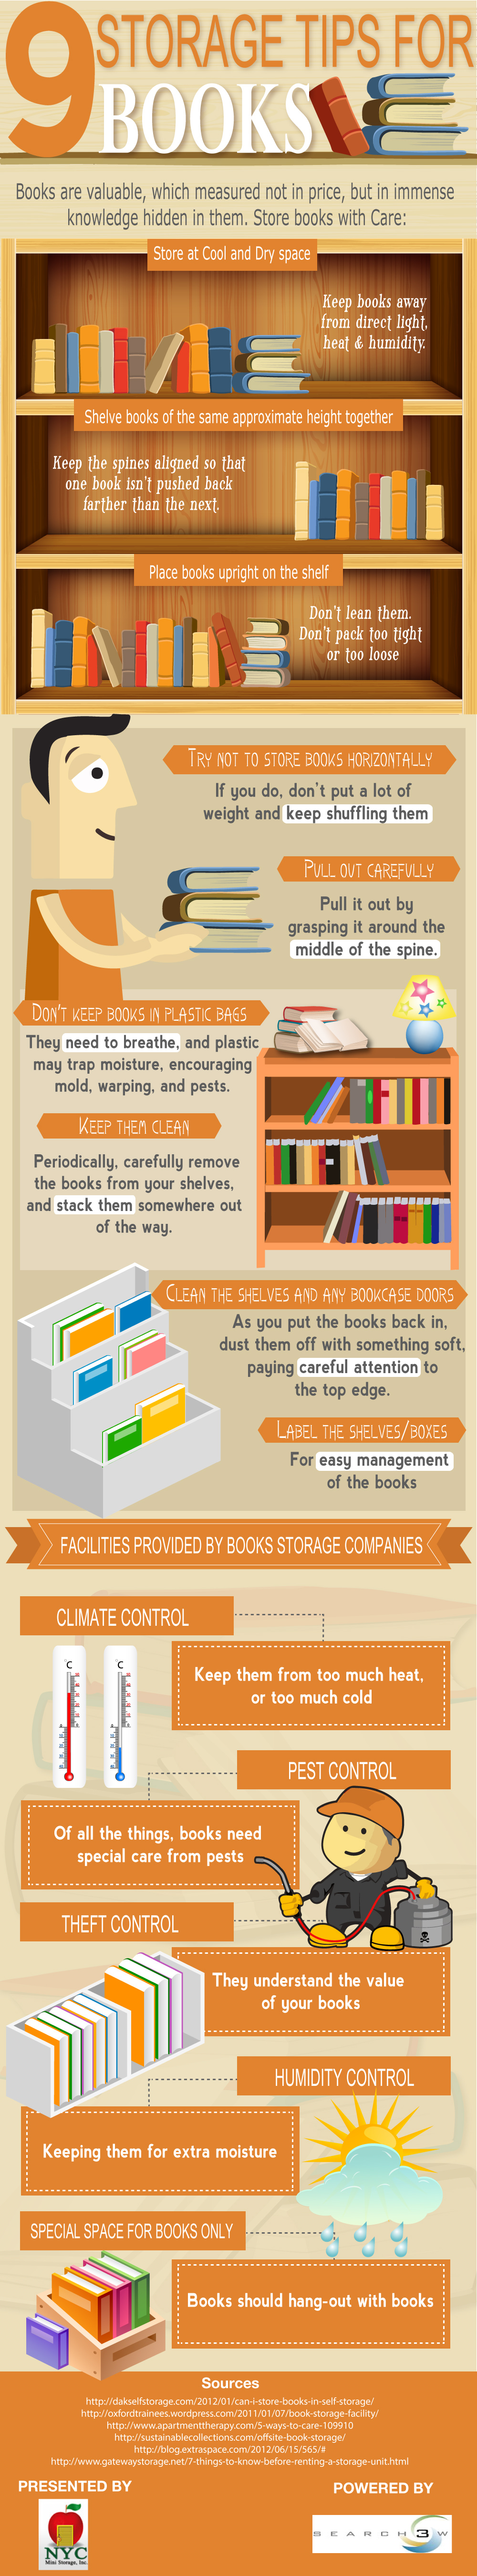 9 Storage Tips for Books